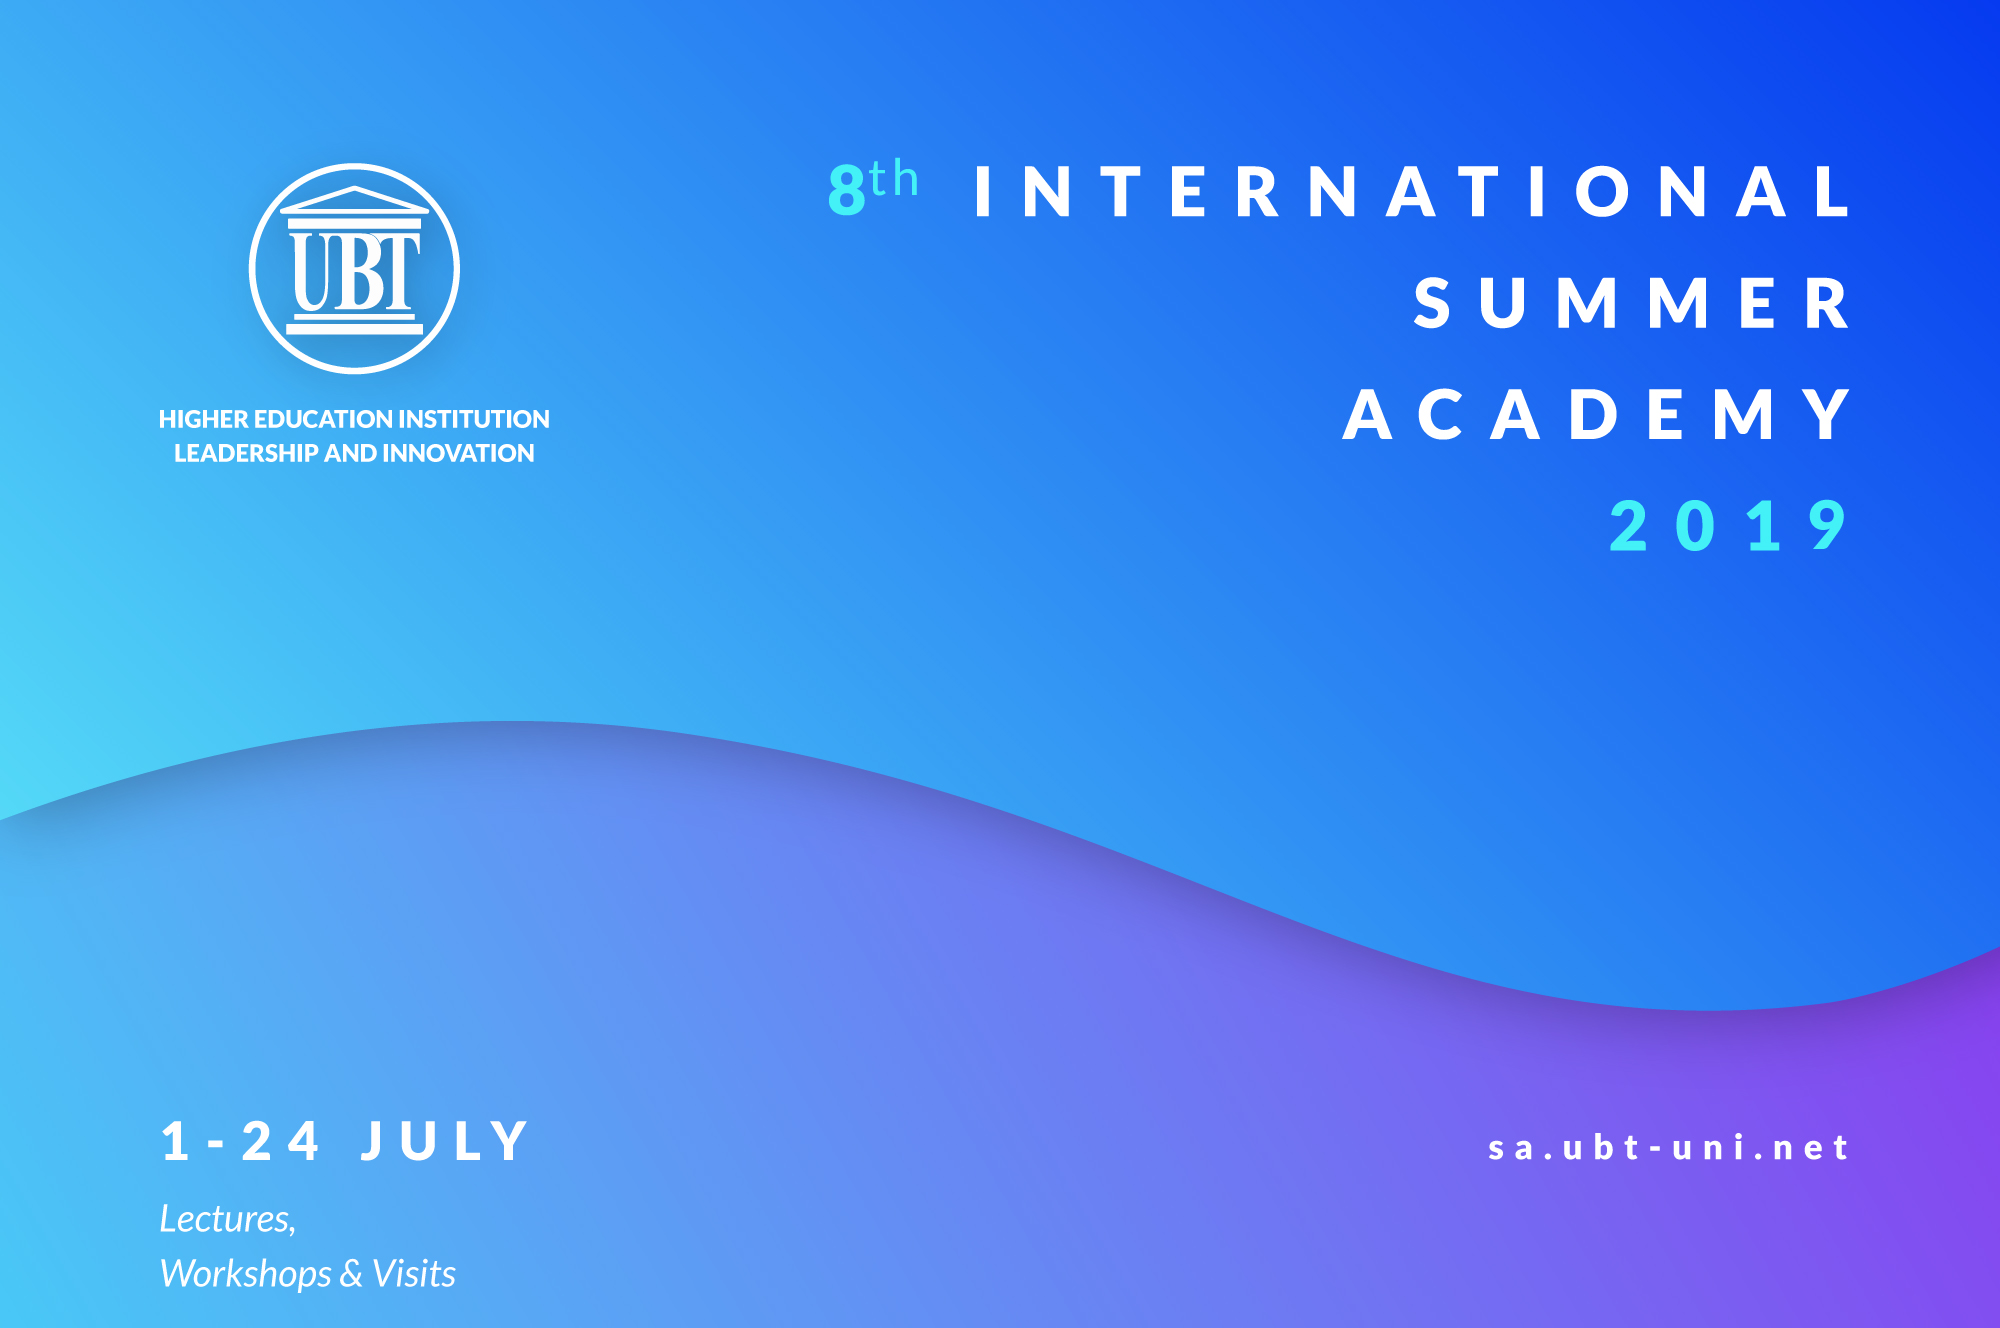 In July will start the International Summer Academy of UBT